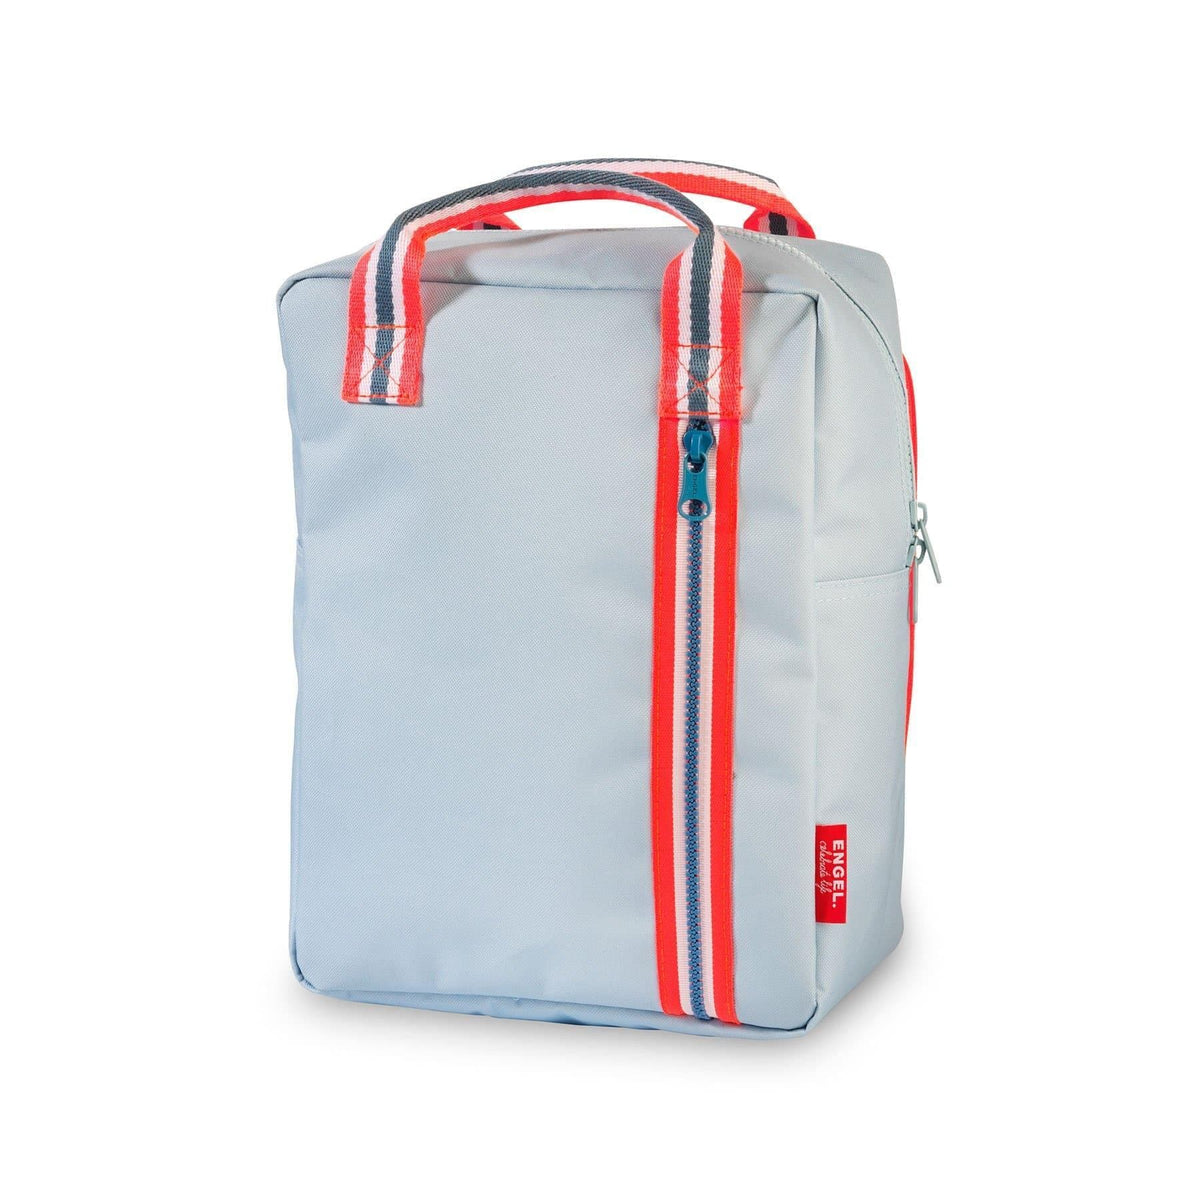 Backpack Zipper Light Blue-Backpack-Engel-Medium-Totem Store